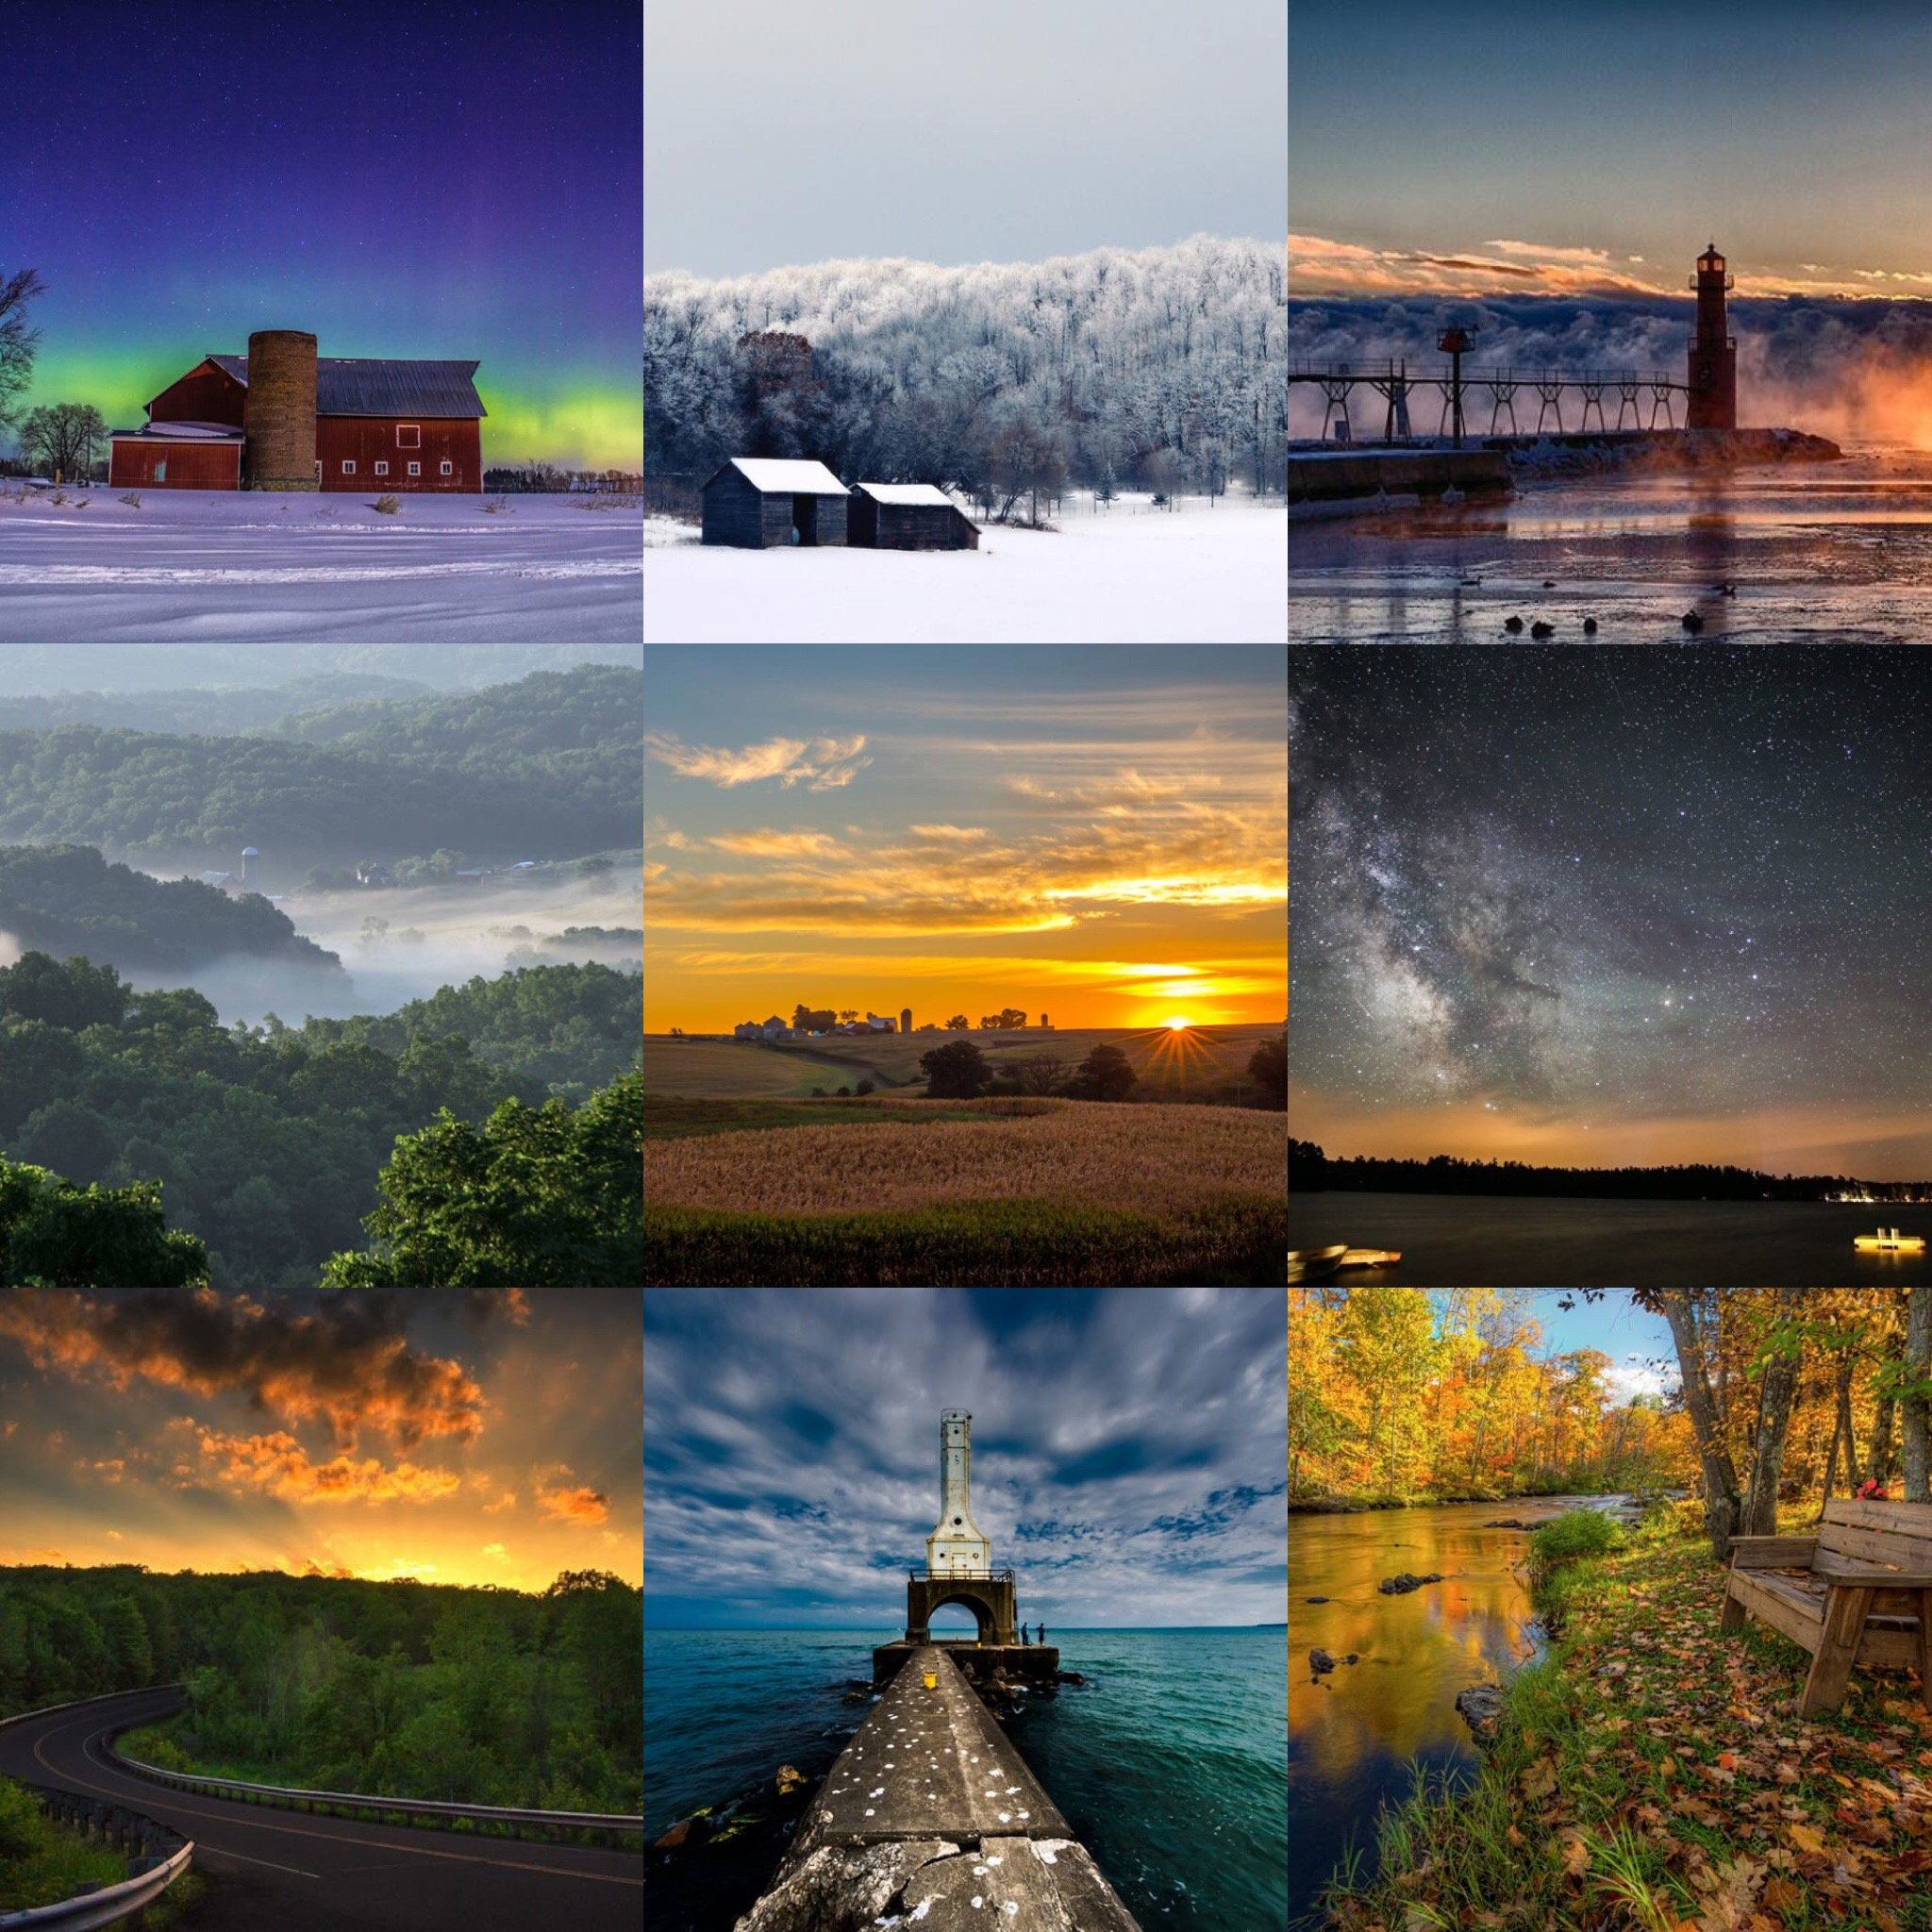 [OFFICIAL RULES] 2019 Discover Wisconsin Calendar Photo Contest